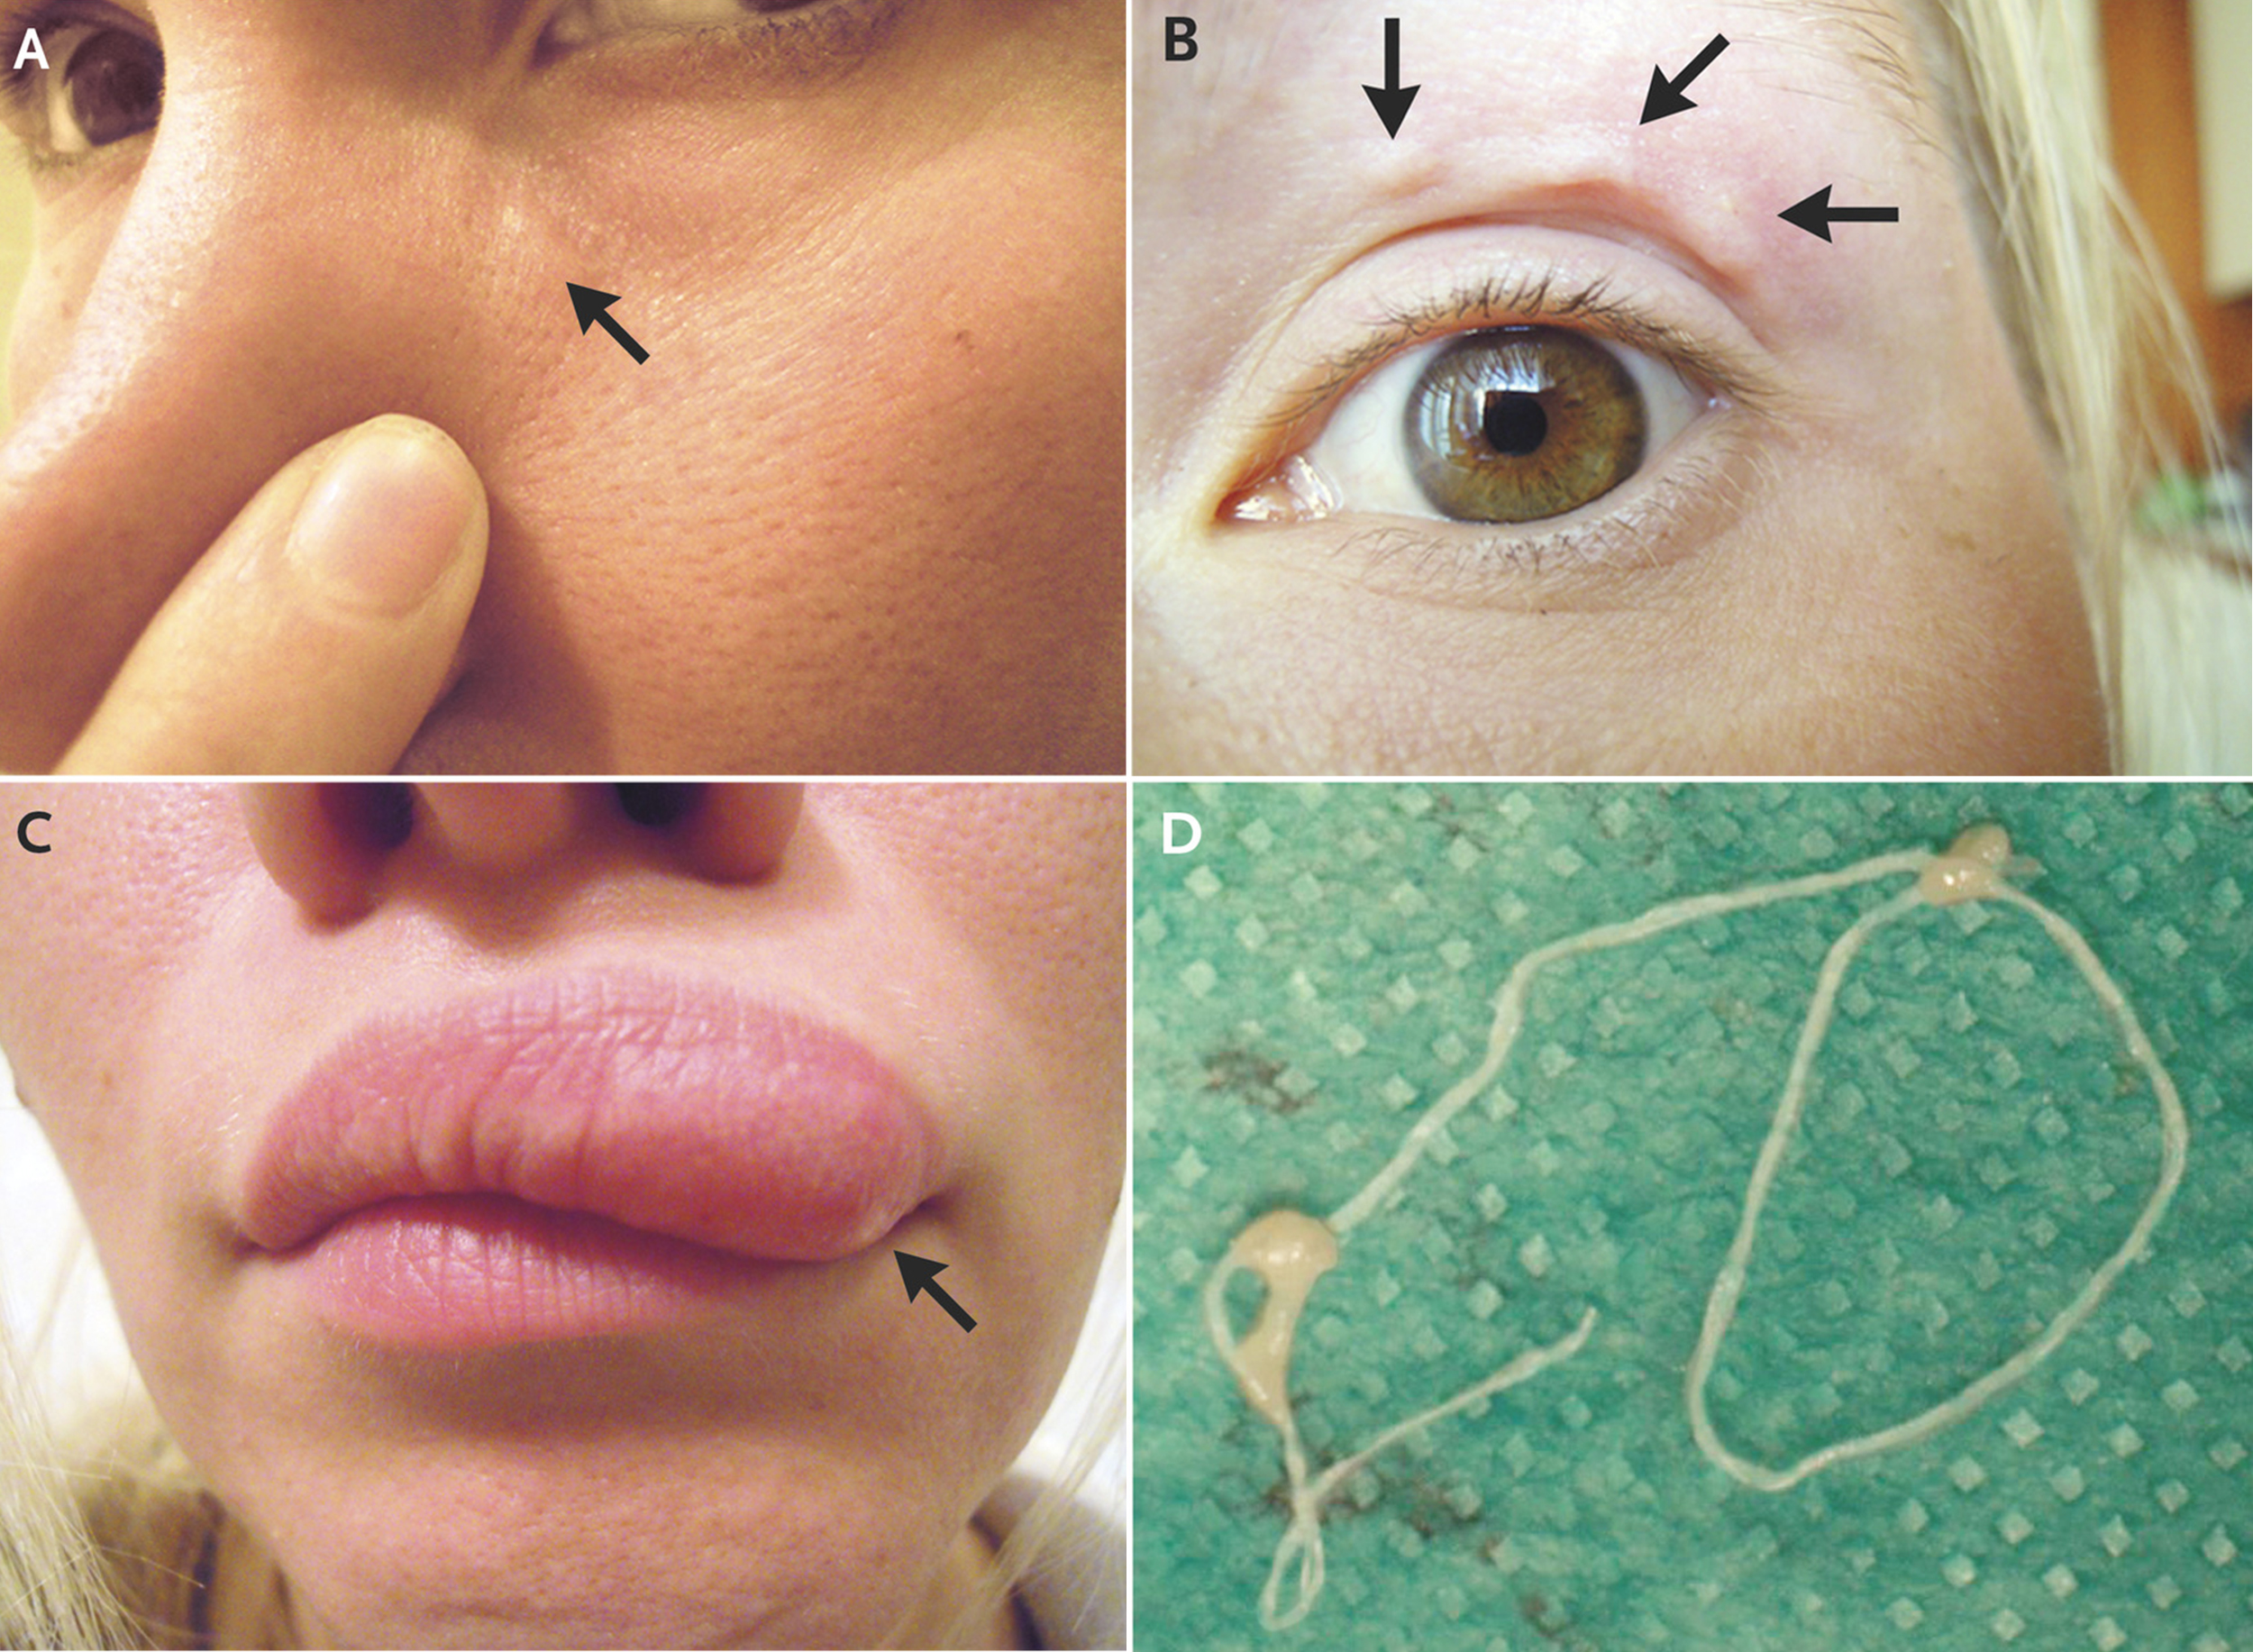 Moving lump in woman's face was a worm